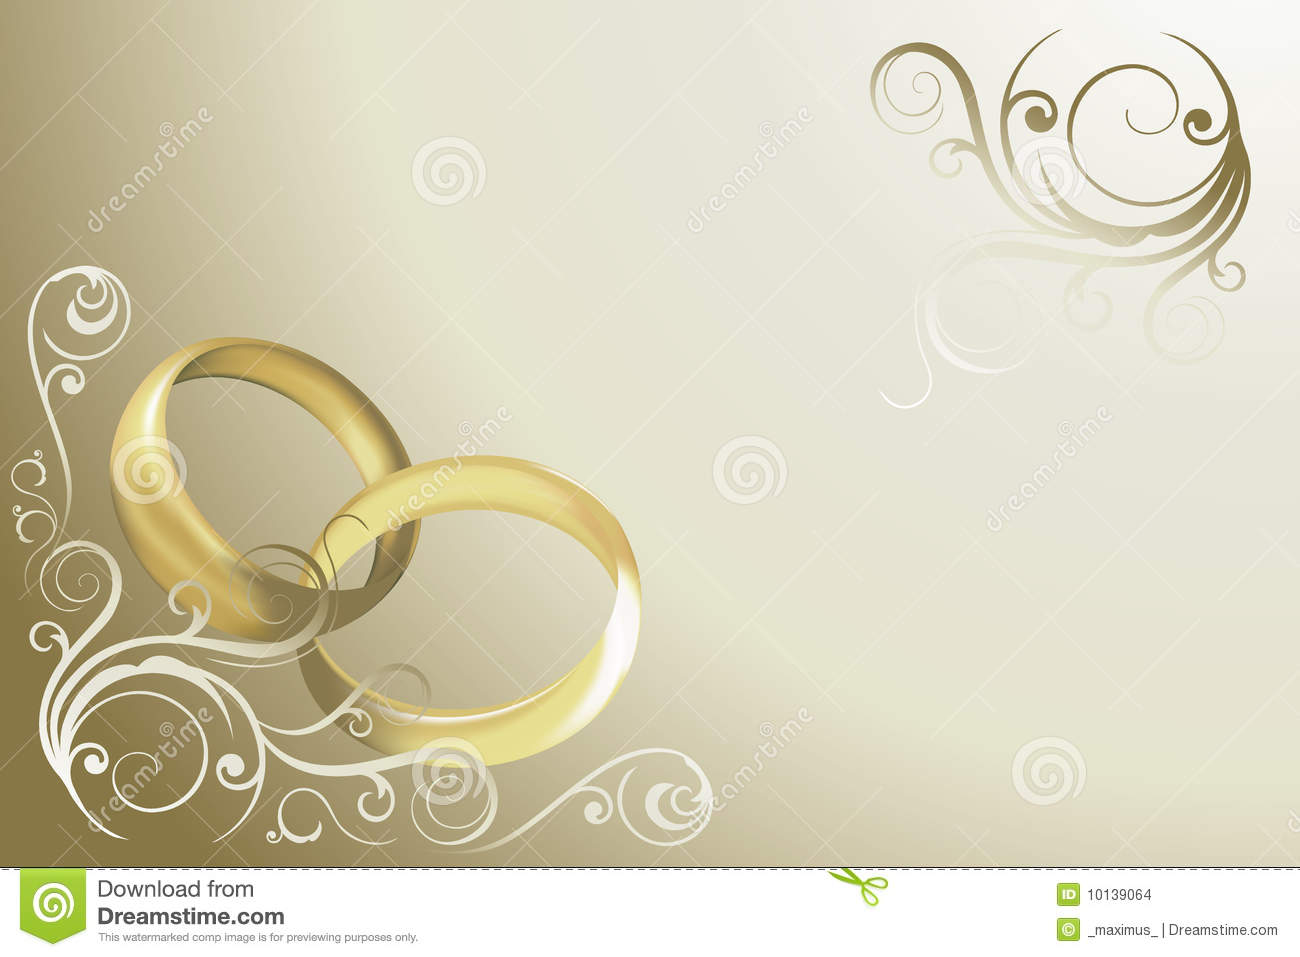 Wedding Card Vector Stock Images - Image: 10139064